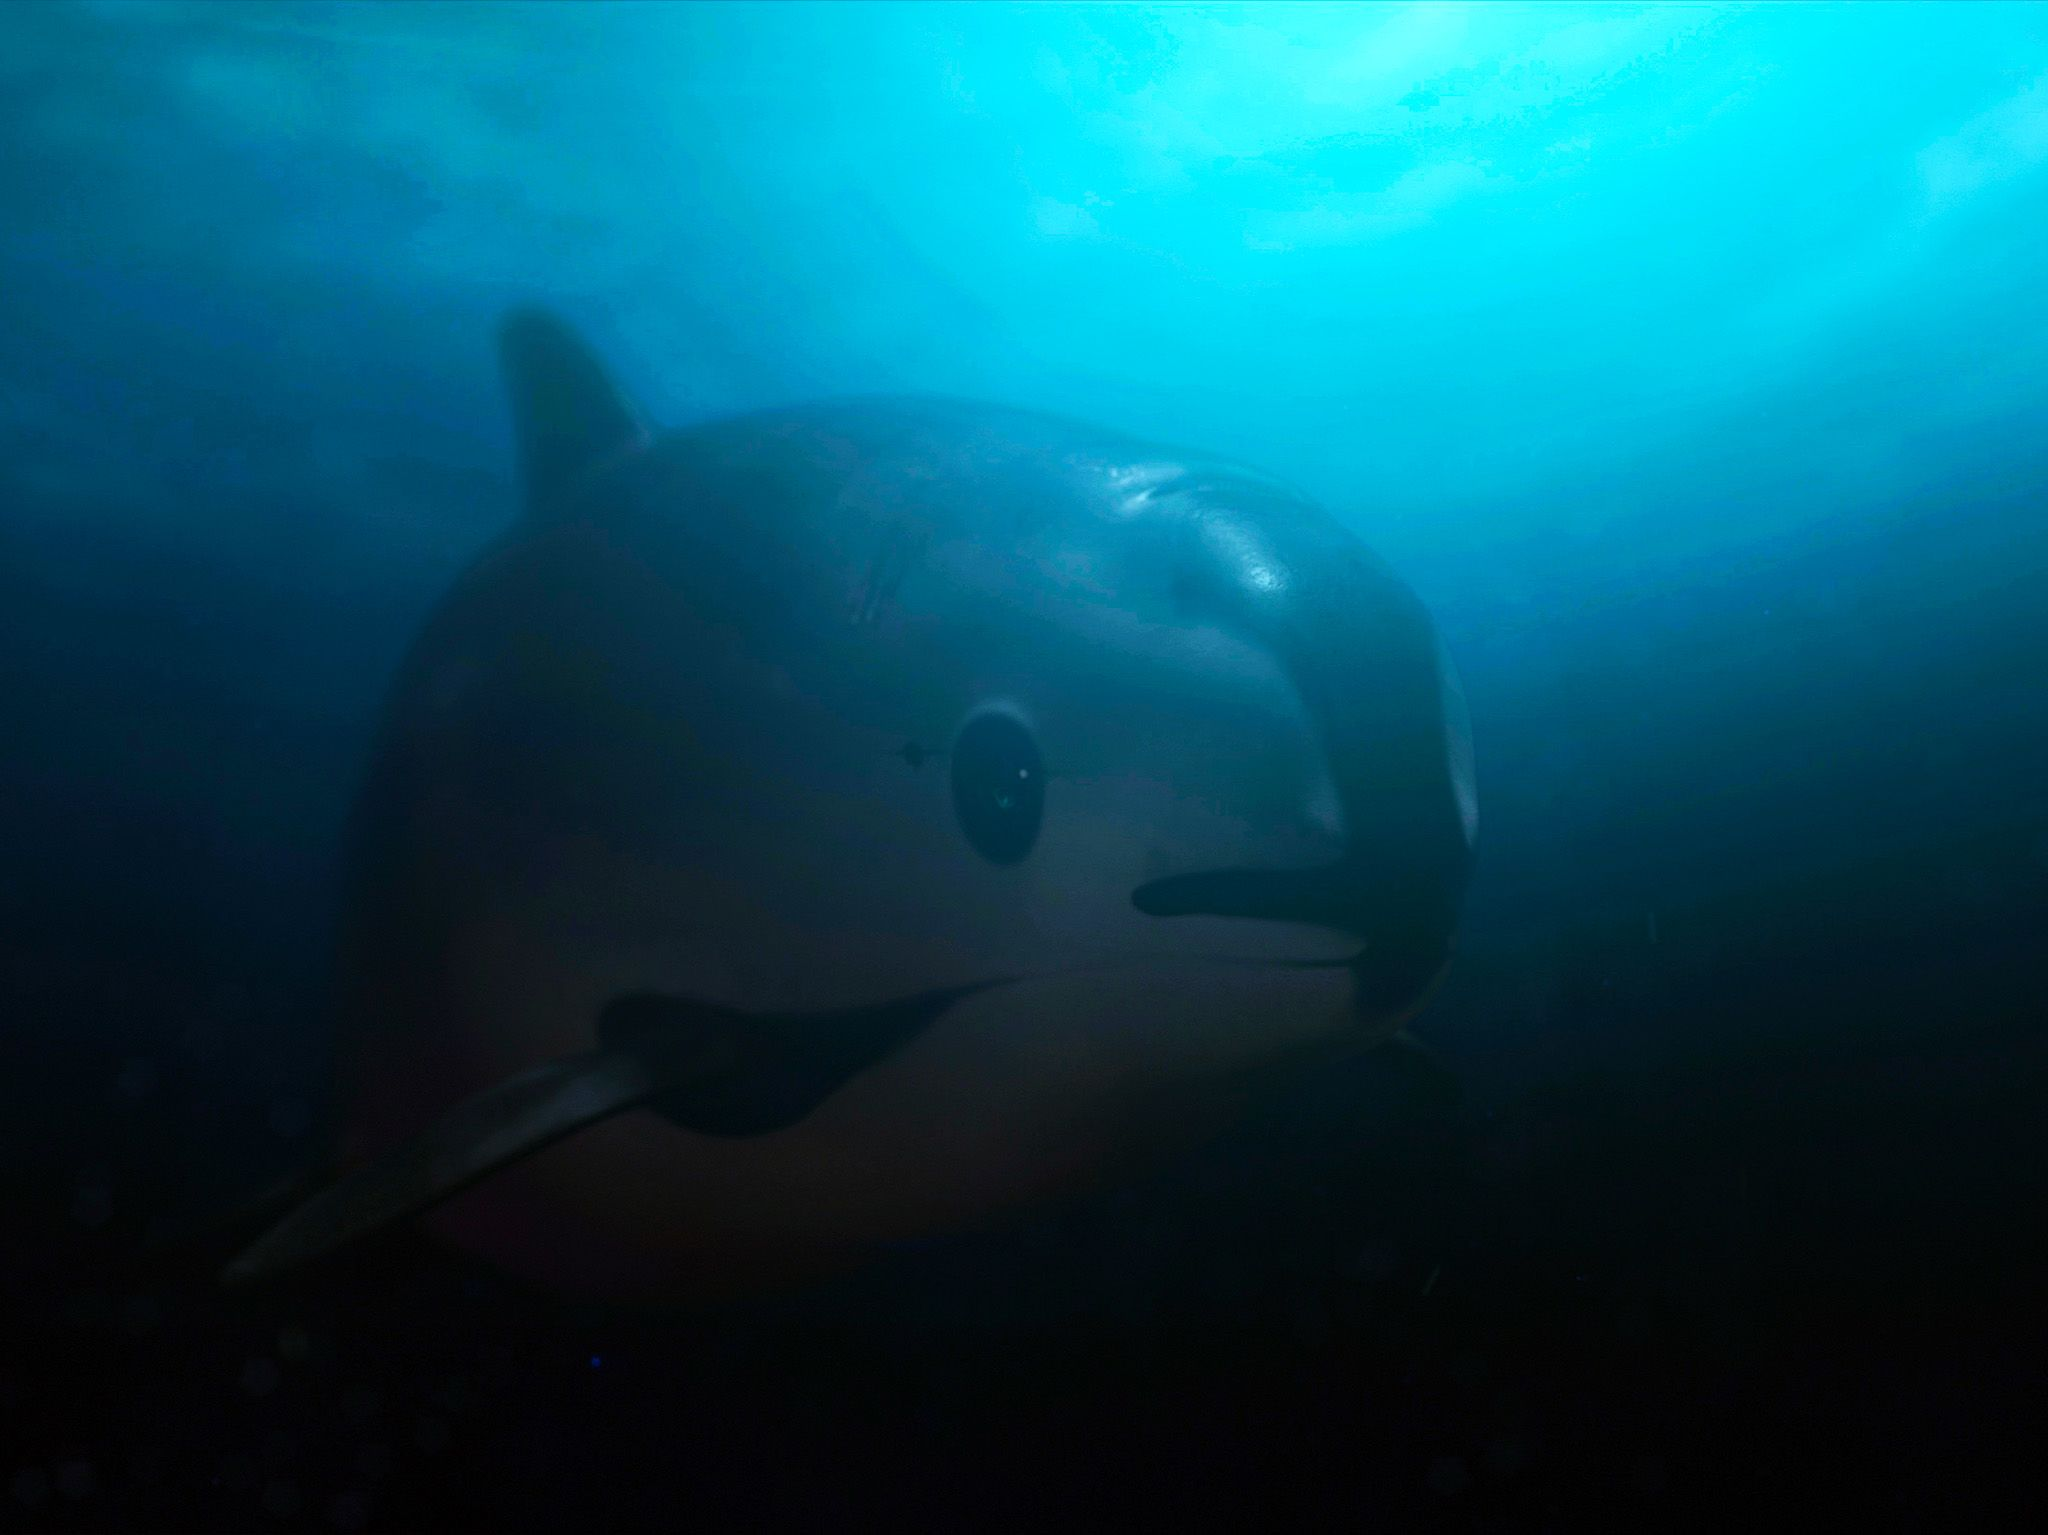 Vaquita underwater swimming. This image is from Sea of Shadows. [Photo of the day - April 2020]